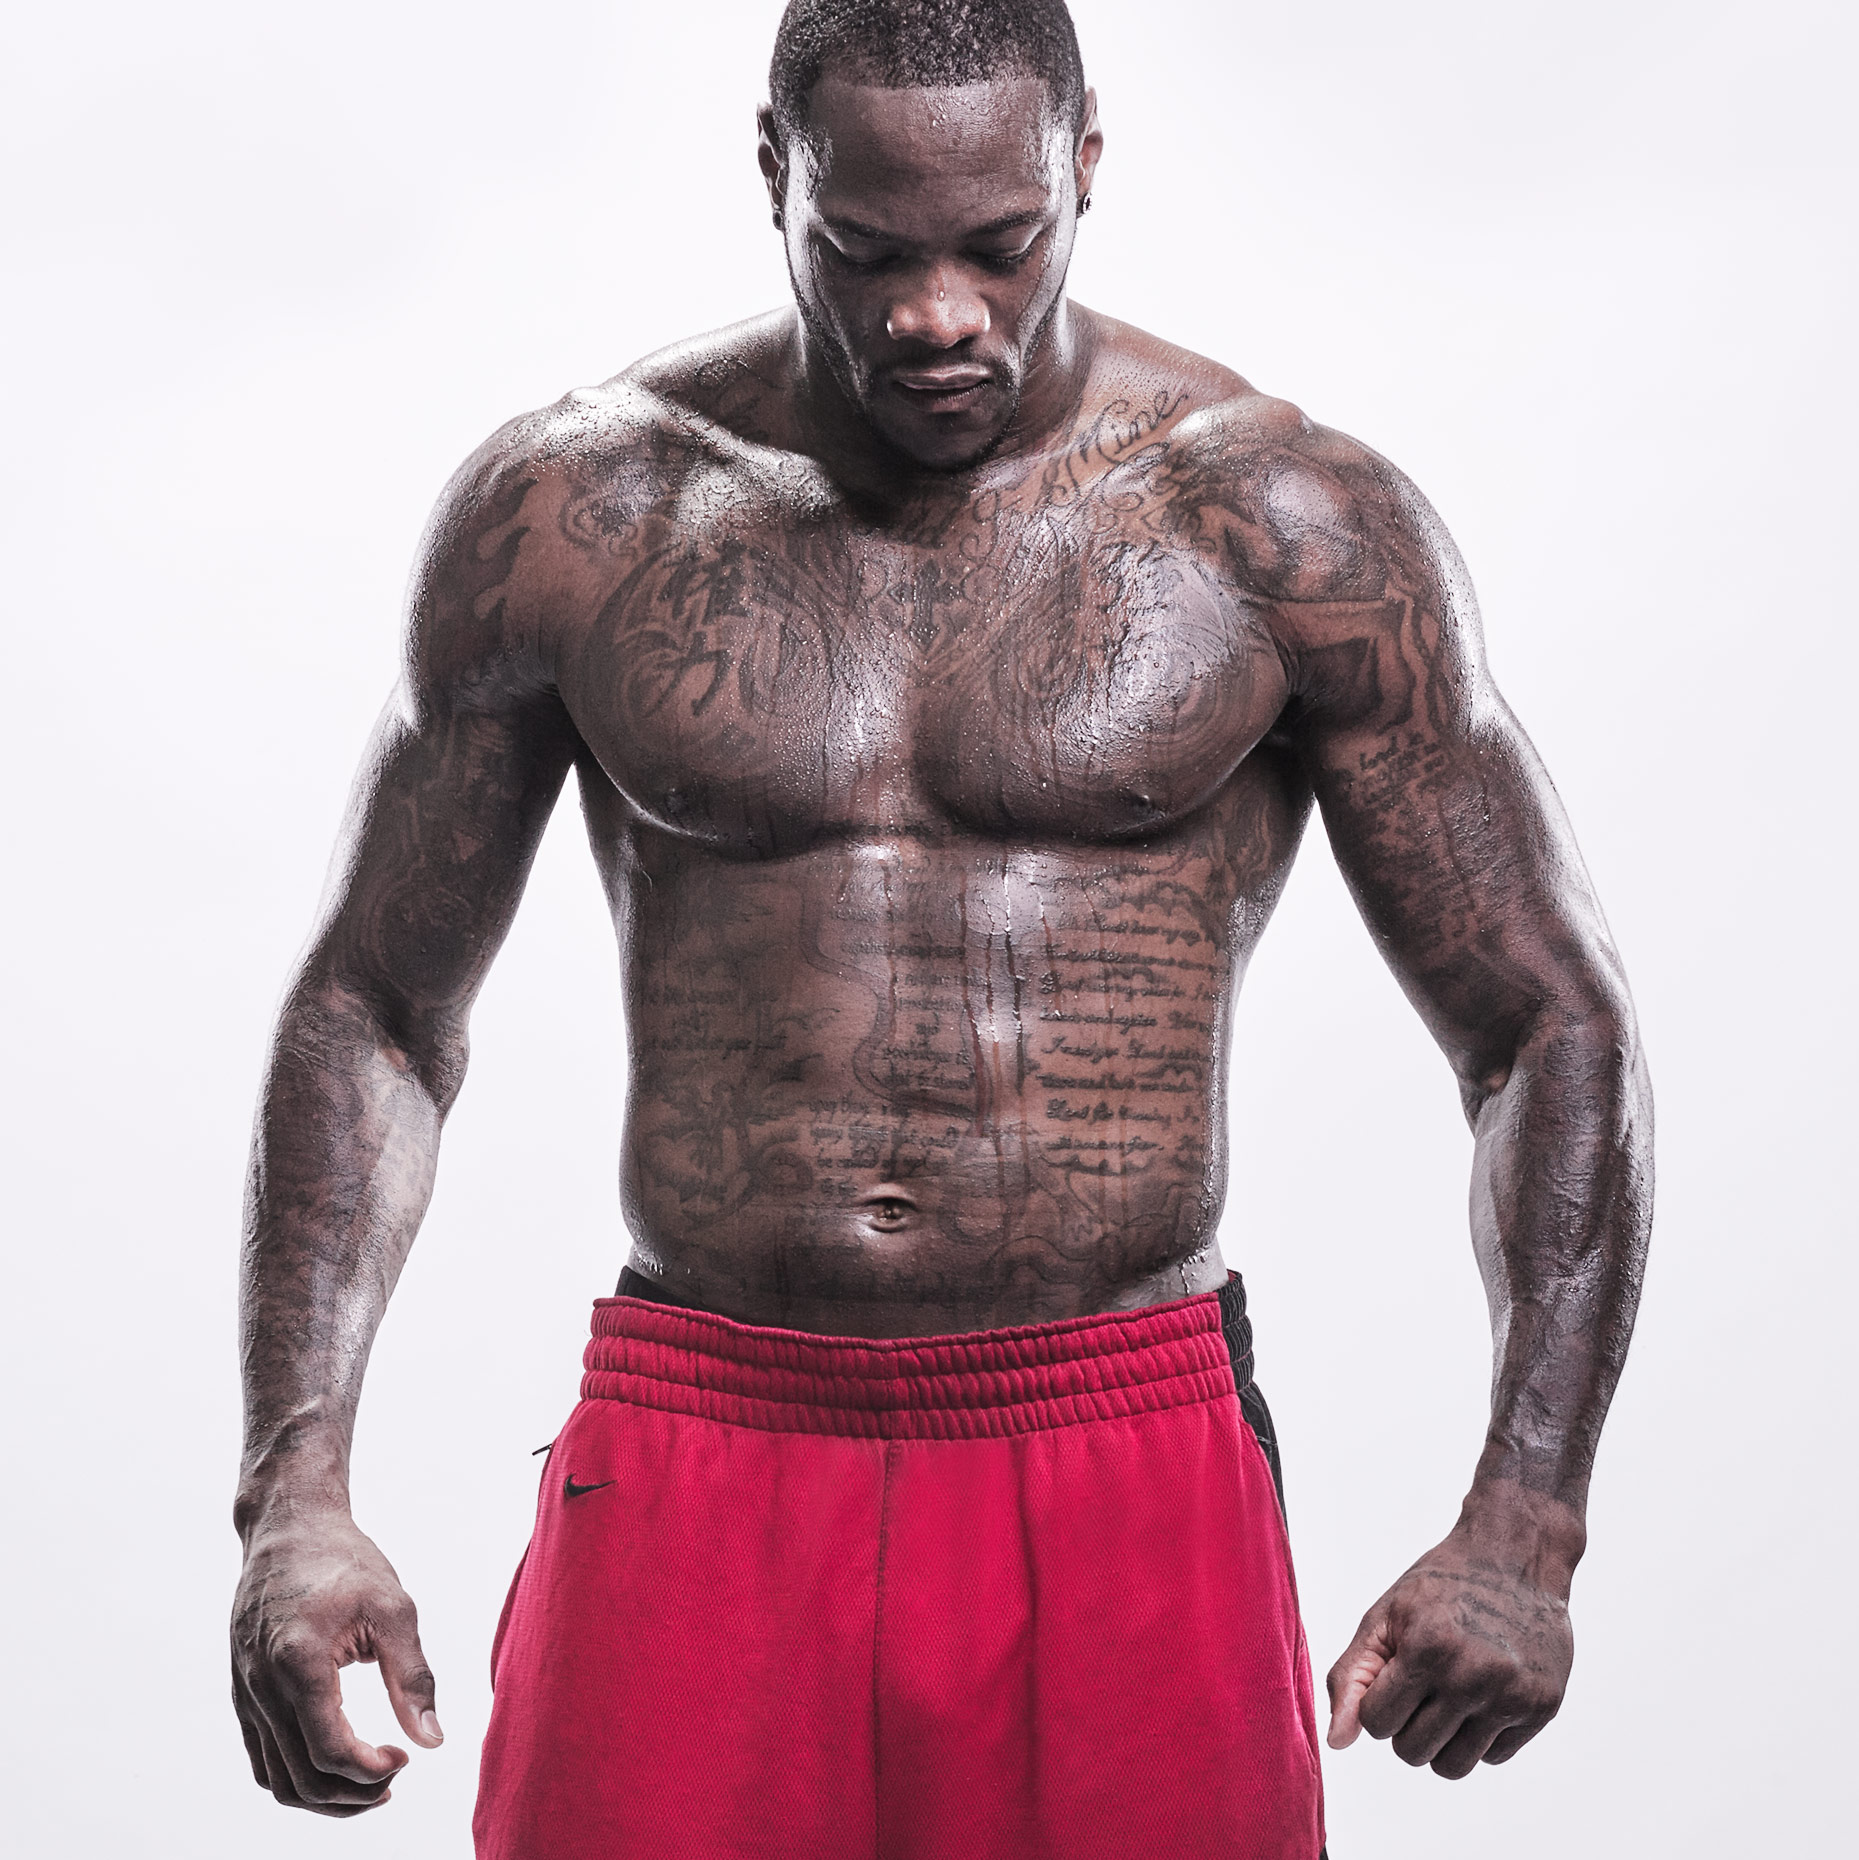 Deontay-Wilder-by-Michael-J-Moore-X